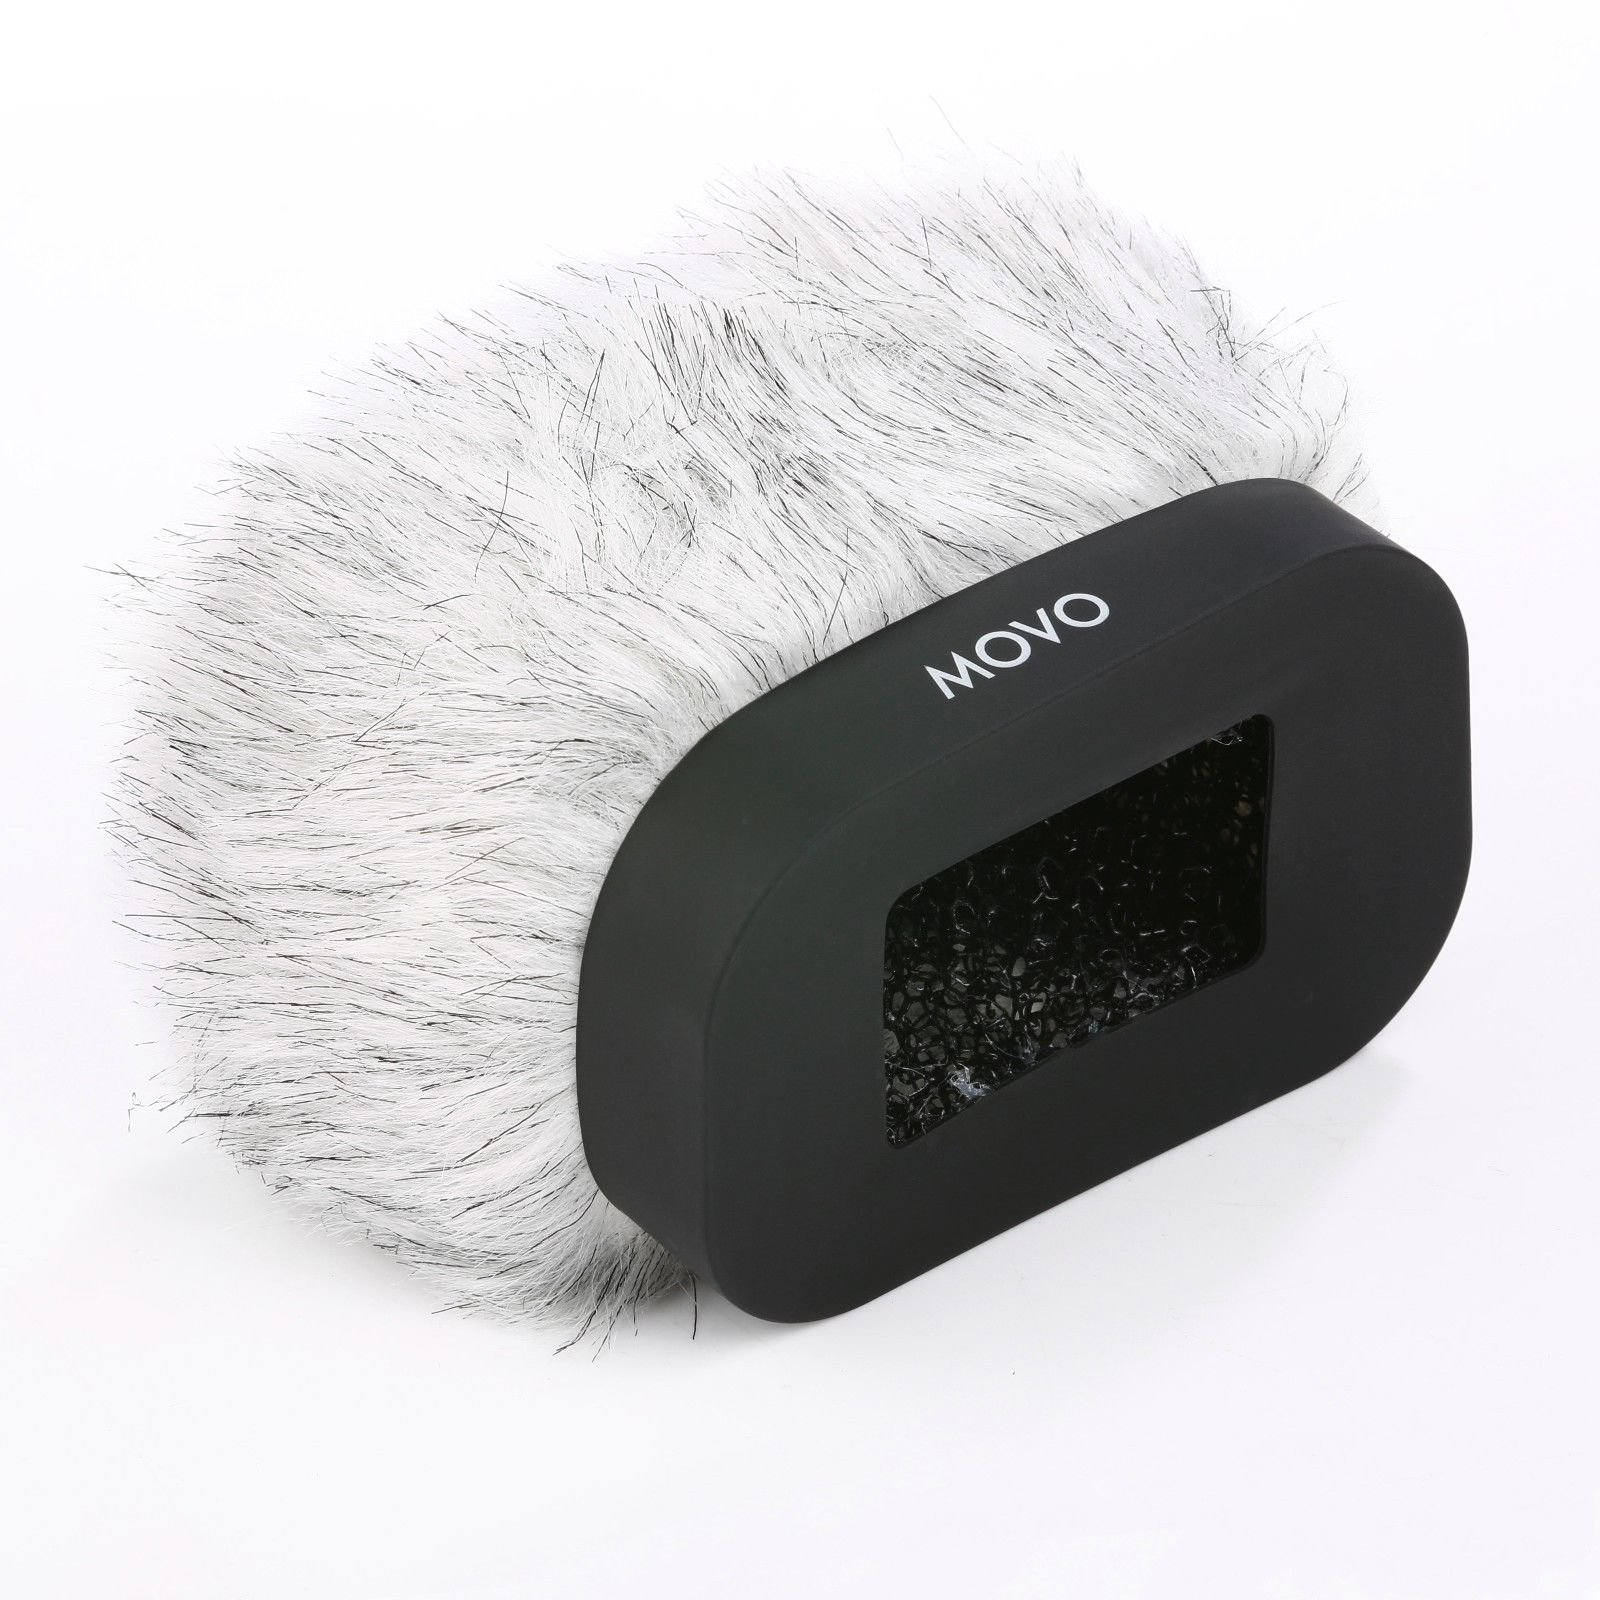 Movo WS-R30 Professional Furry Windscreen with Acoustic Foam Technology for Zoom H4n, H5, H6, Tascam DR-100 MKII and Sony PCM-D50 Portable Digital Recorders by Movo